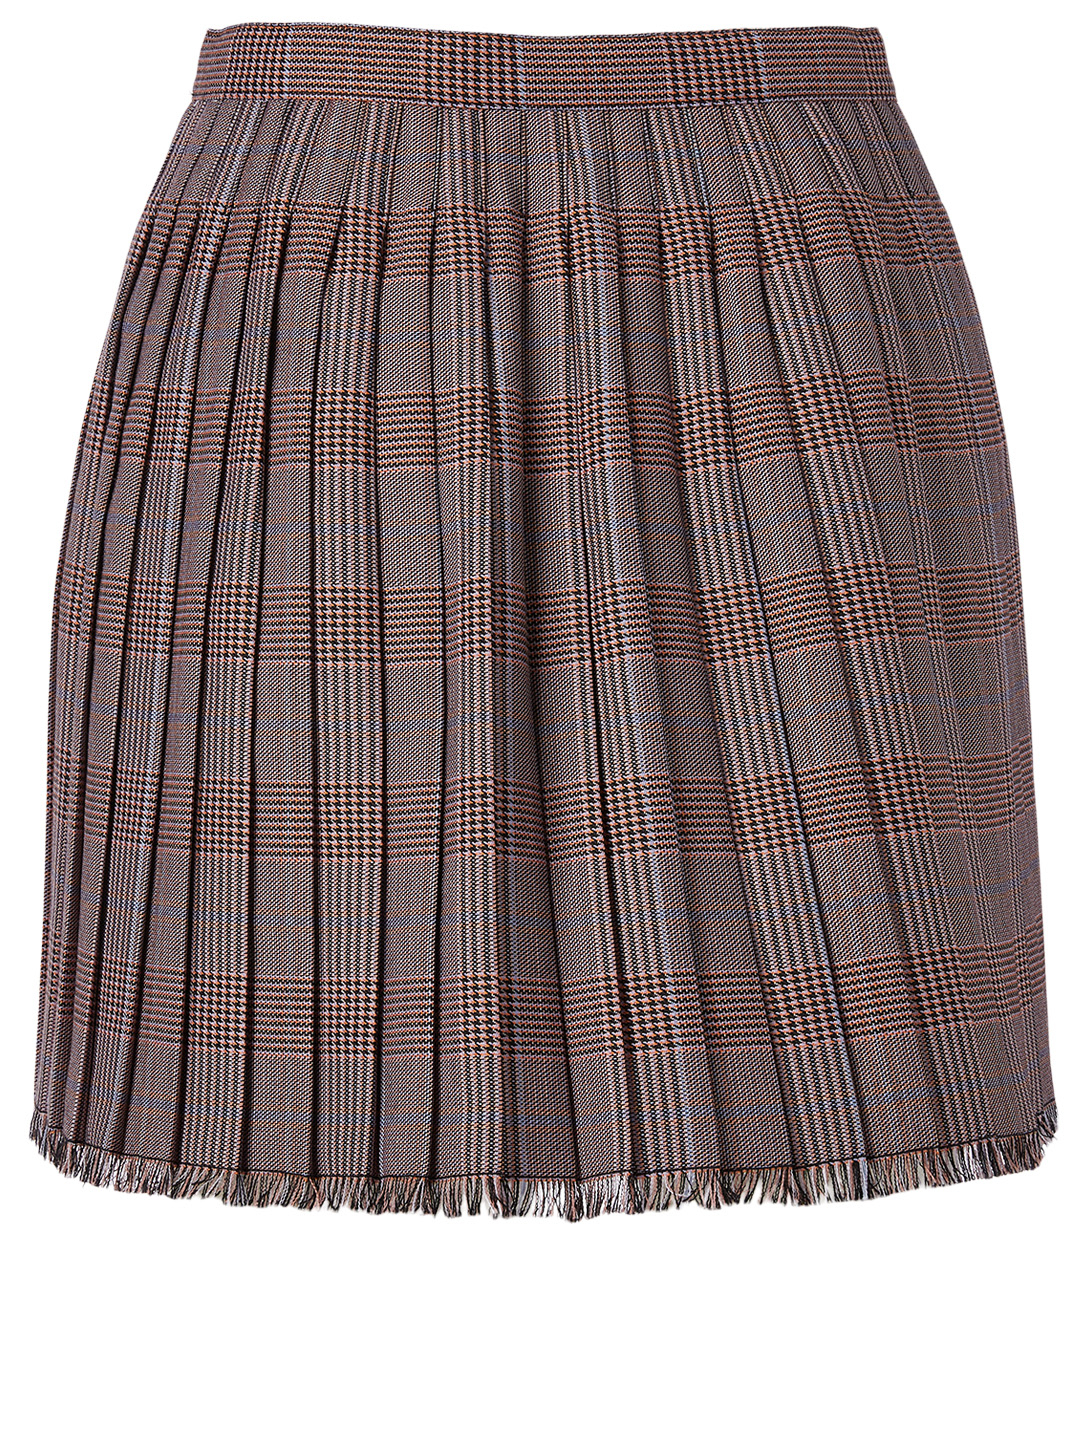 ACNE STUDIOS Wool-Blend Mini Skirt In Check Print Women's Pink